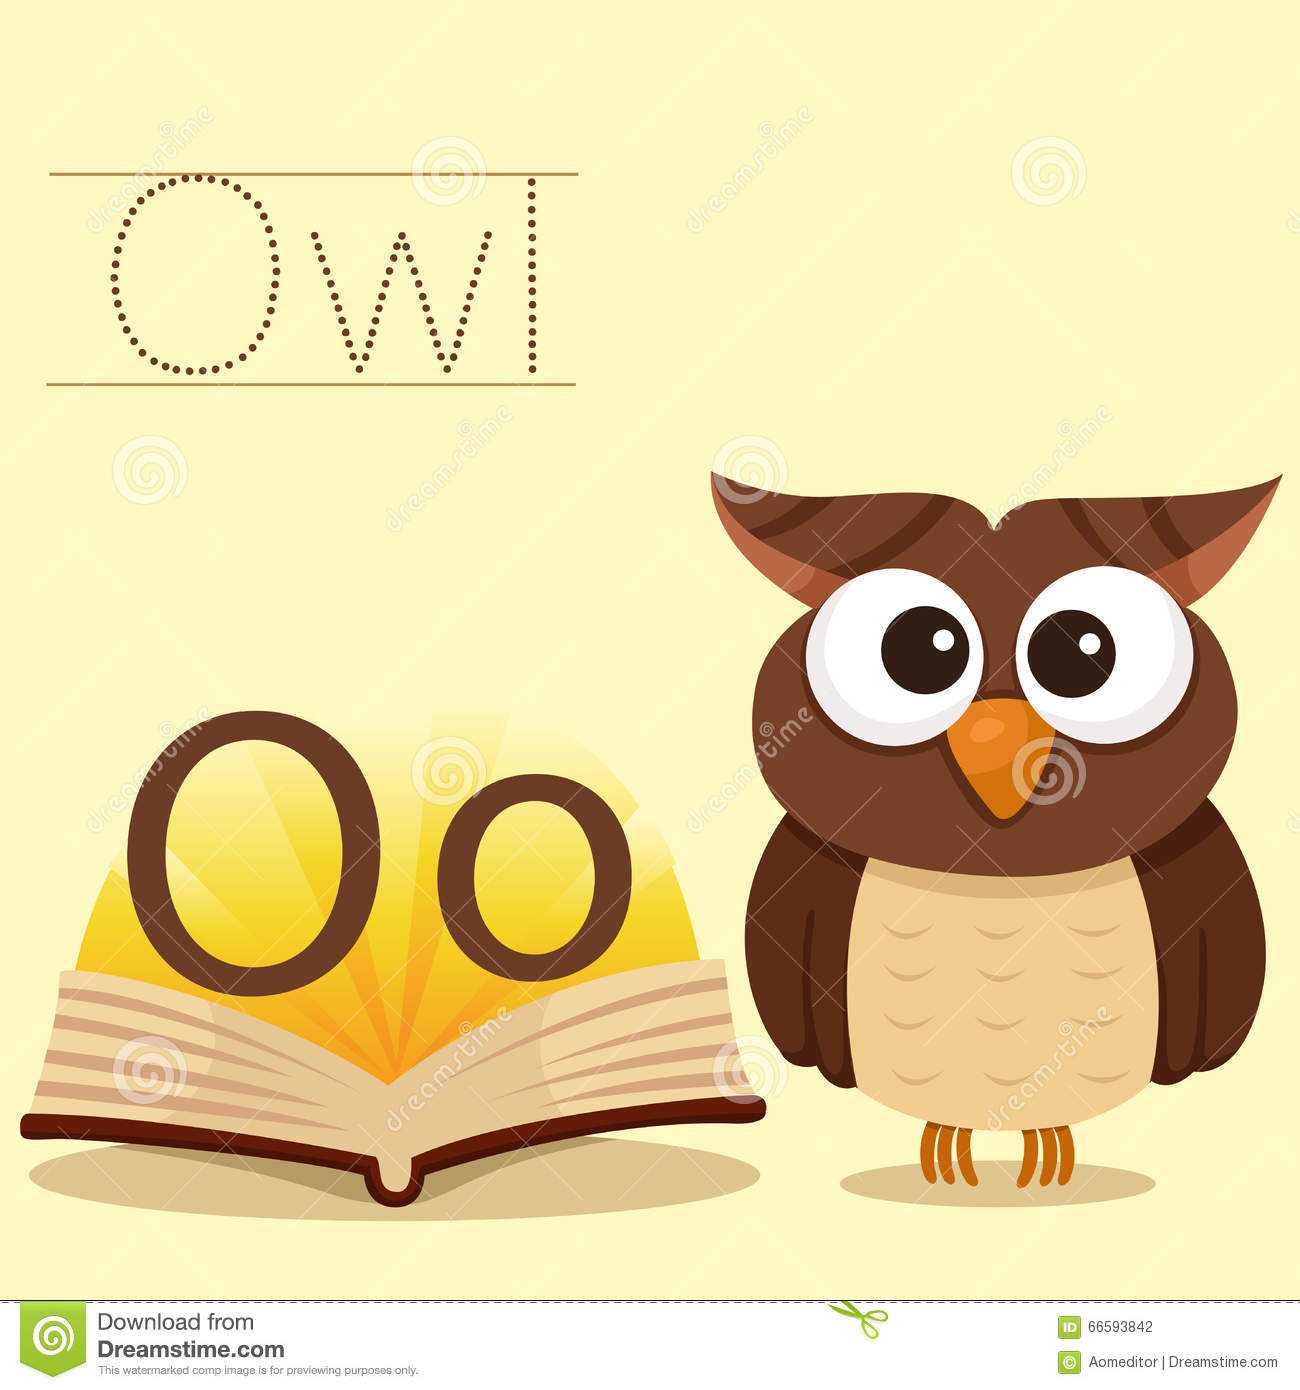 Illustrator Of O For Owl Bee Vocabulary Stock Vector